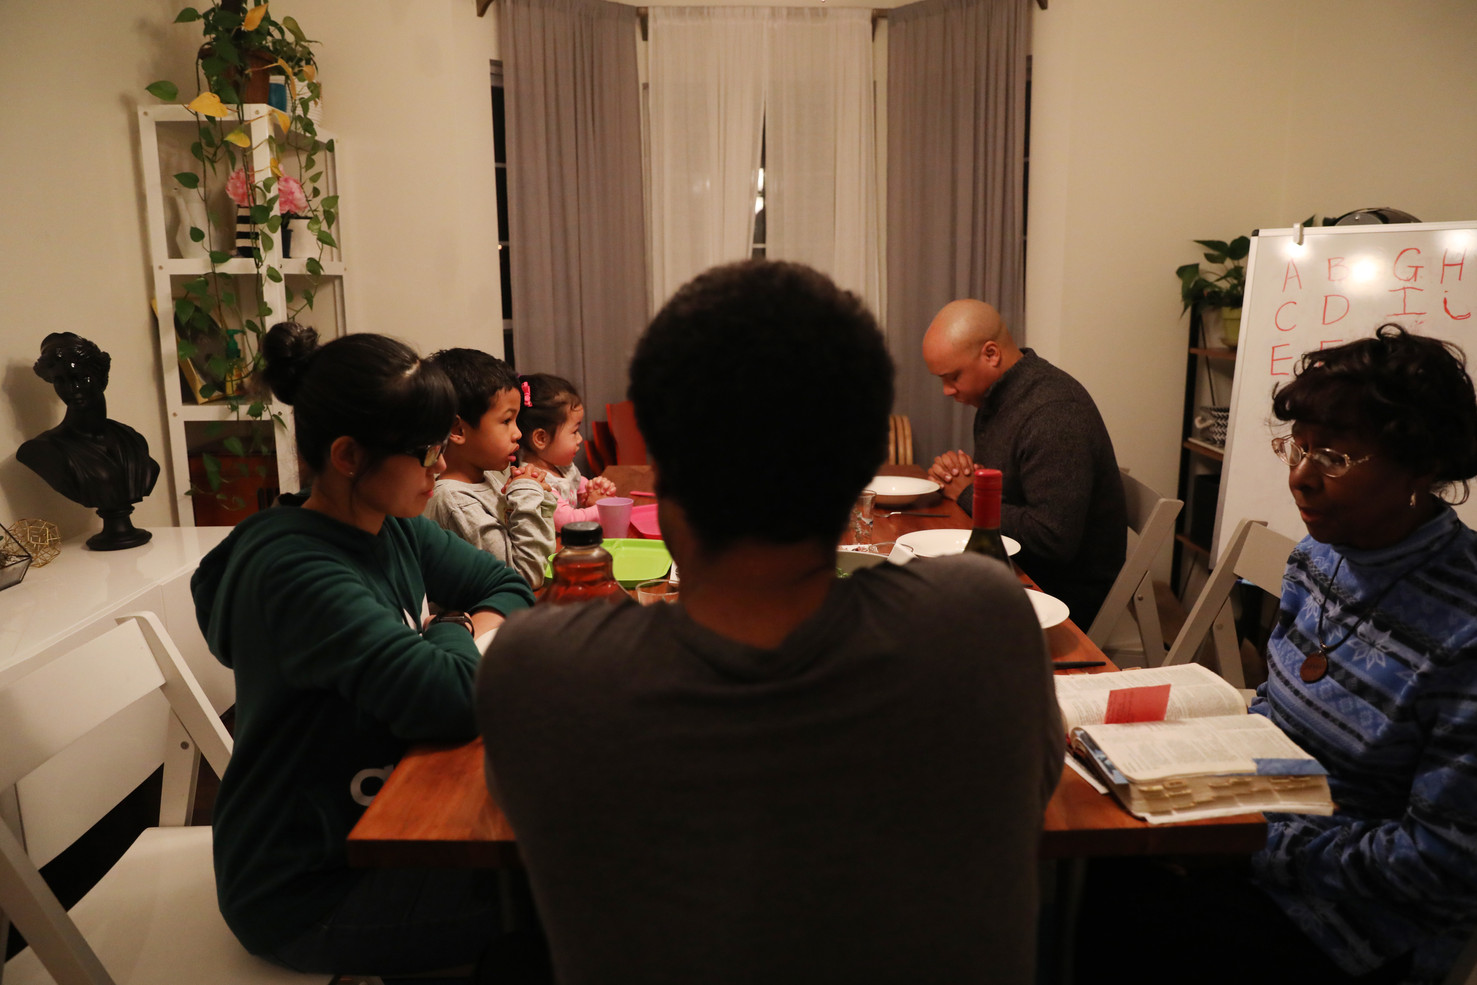 The two-generation family pray before Thanksgiving dinner on Thursday, November 28, 2019 in Columbia, Missouri. Instead of following all formal religious behaviors, Yan and her husband focus more on mentally religious belief. Sometimes, Arthur reminds to have a pray before dinners while parents forget.   Yan Guo Fulcher and Brandon Fulcher decided to get married and have a faithful Christian family in 2007. After their son and daughter, Arthur, 6, and Jane, 3, was born, they bring children to be familiar with Christianity by going to church every Sunday, attending church's events and celebrating every religious holiday, but at the same time, give more spaces in choosing religions. Love, respect, and open-mindness are Yan and her husband's principles of education inspired by the Bible. They give children endless love, and respect and accept children's decisions while growing up.